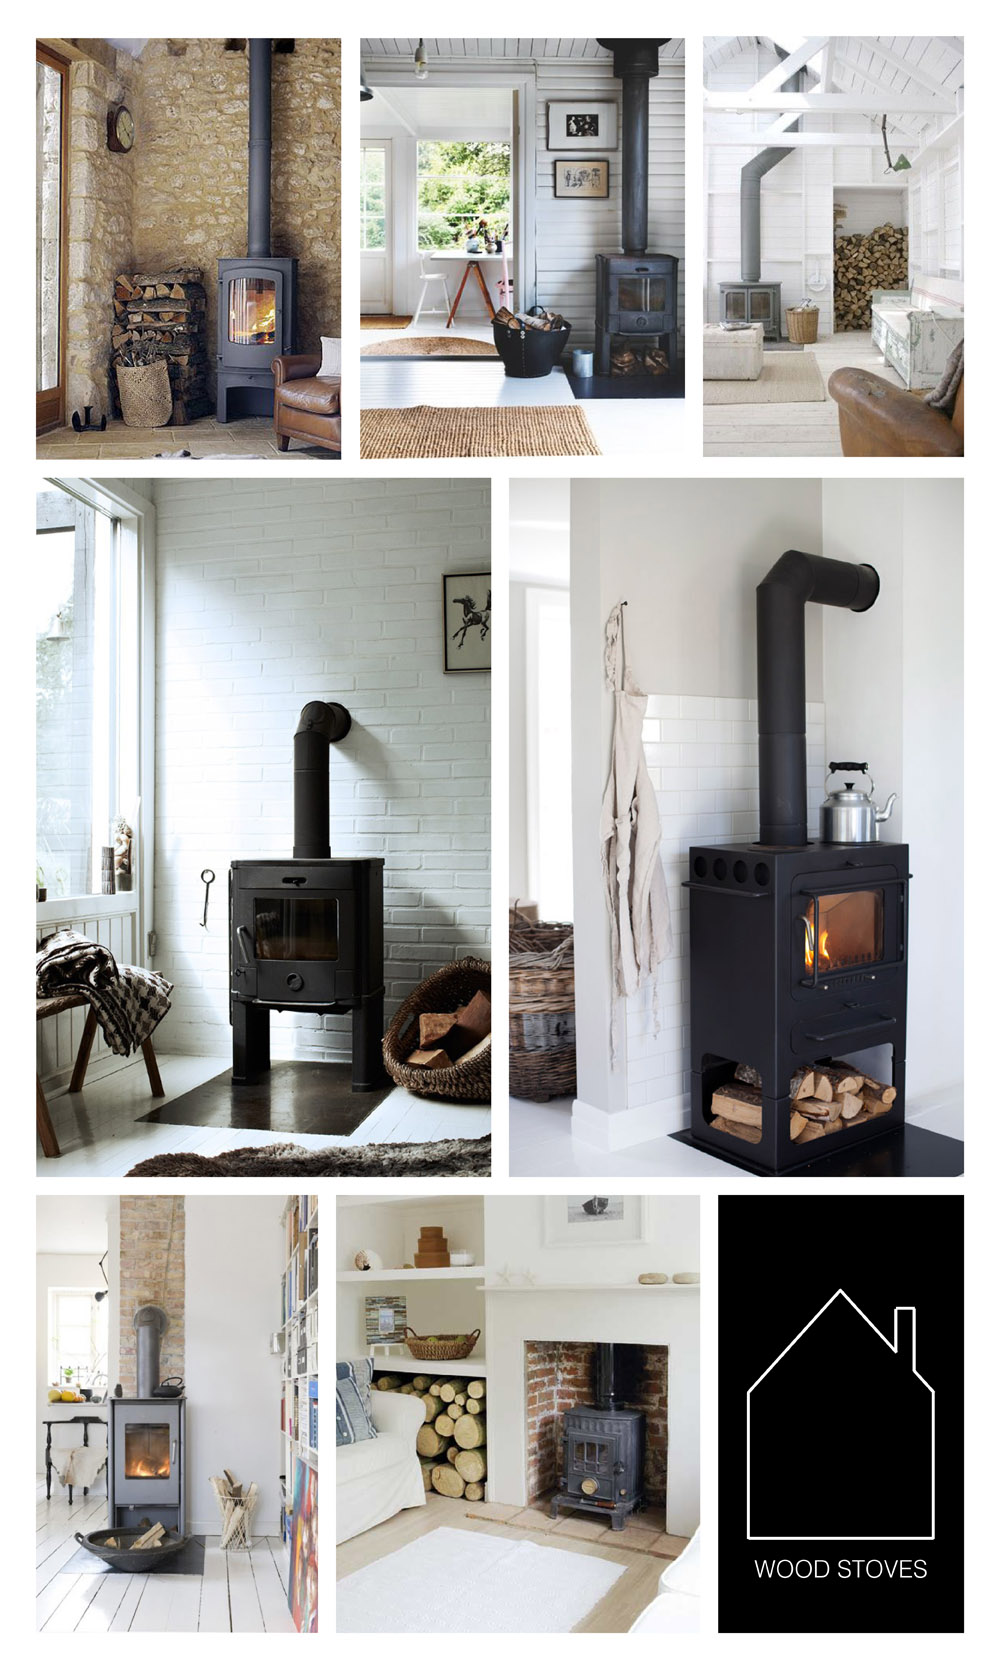 from top left - source unknown - design by Nicoline Olsen via Bolig Magasinet - source unknown - styling by Hilary Robertson via REMODELISTA - via Sugar & Charm - via Mechant Studio - via House to Home